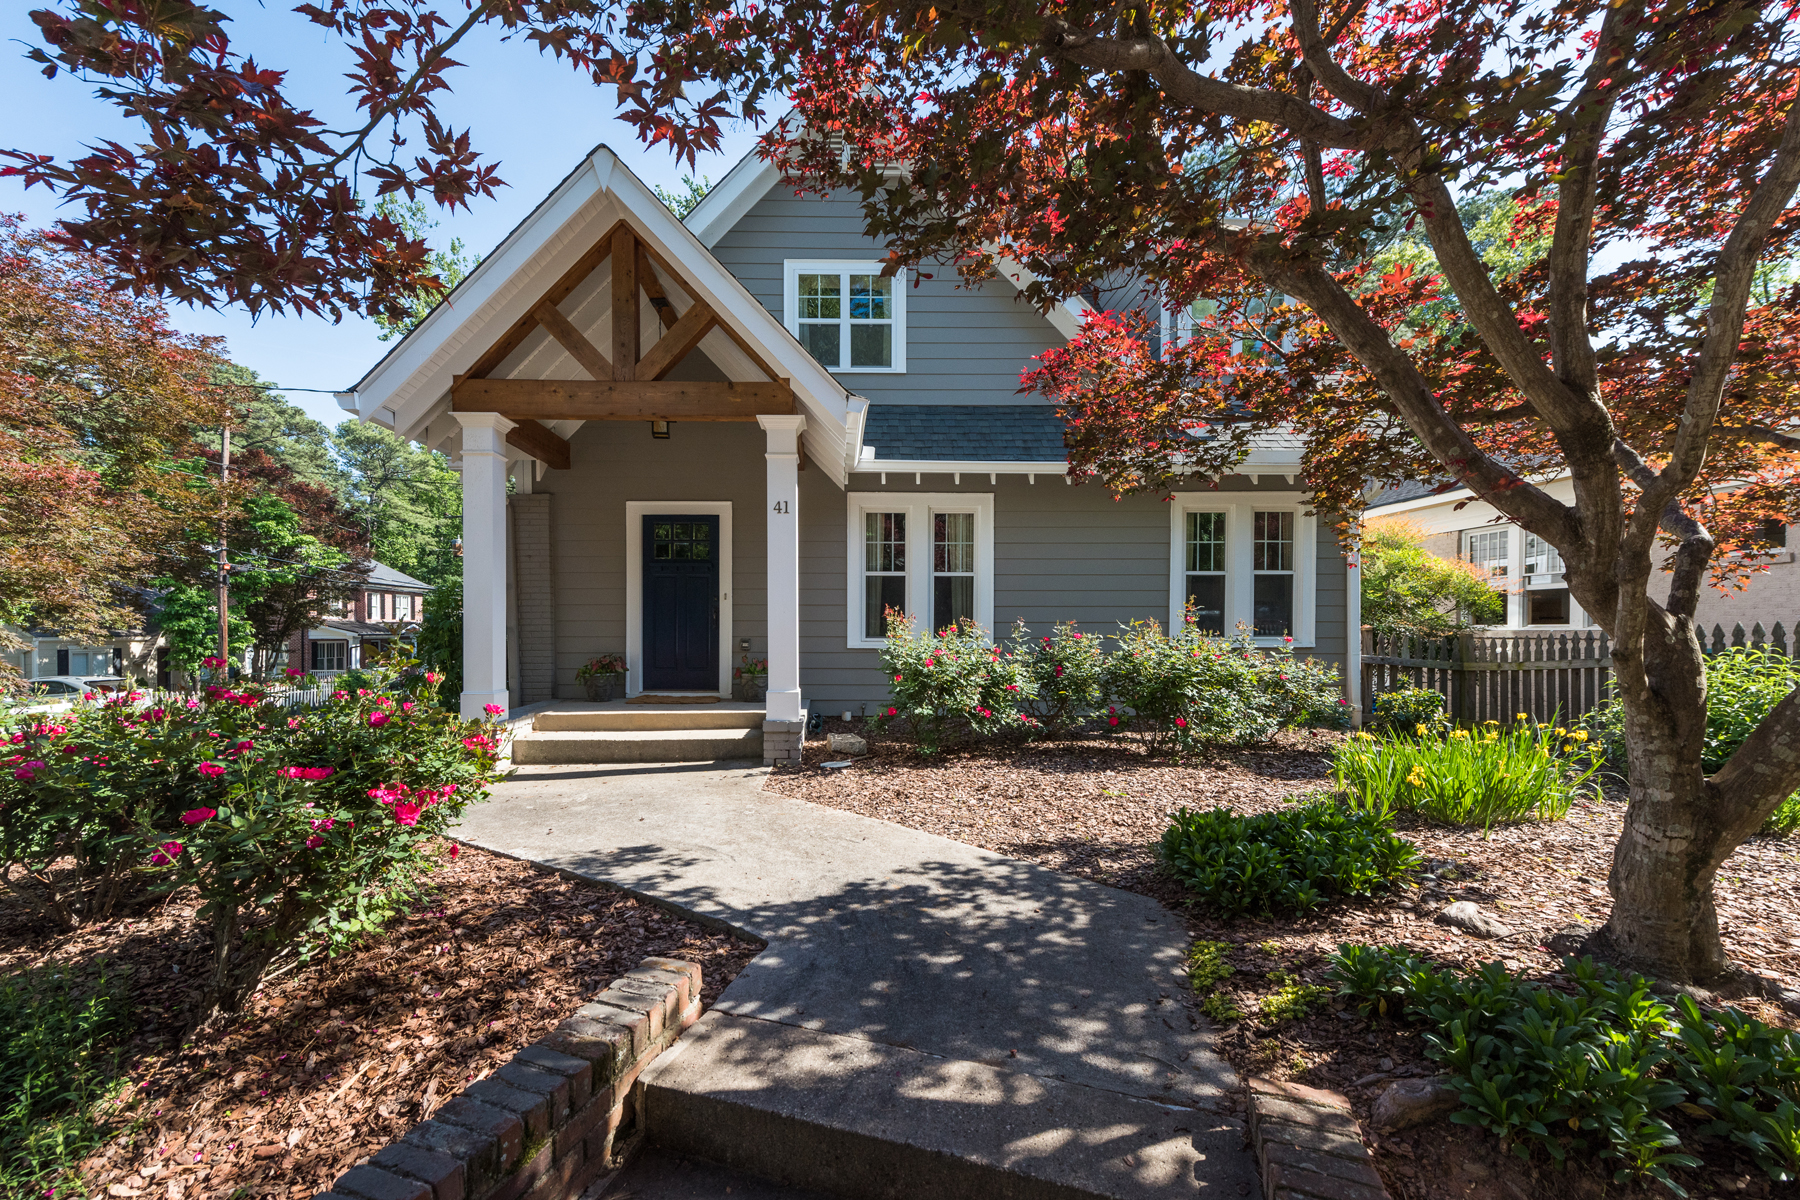 Single Family Home for Active at Charming Renovated Home In One Of Buckhead's Most Popular Neighborhoods 41 East Drive NE Atlanta, Georgia 30305 United States